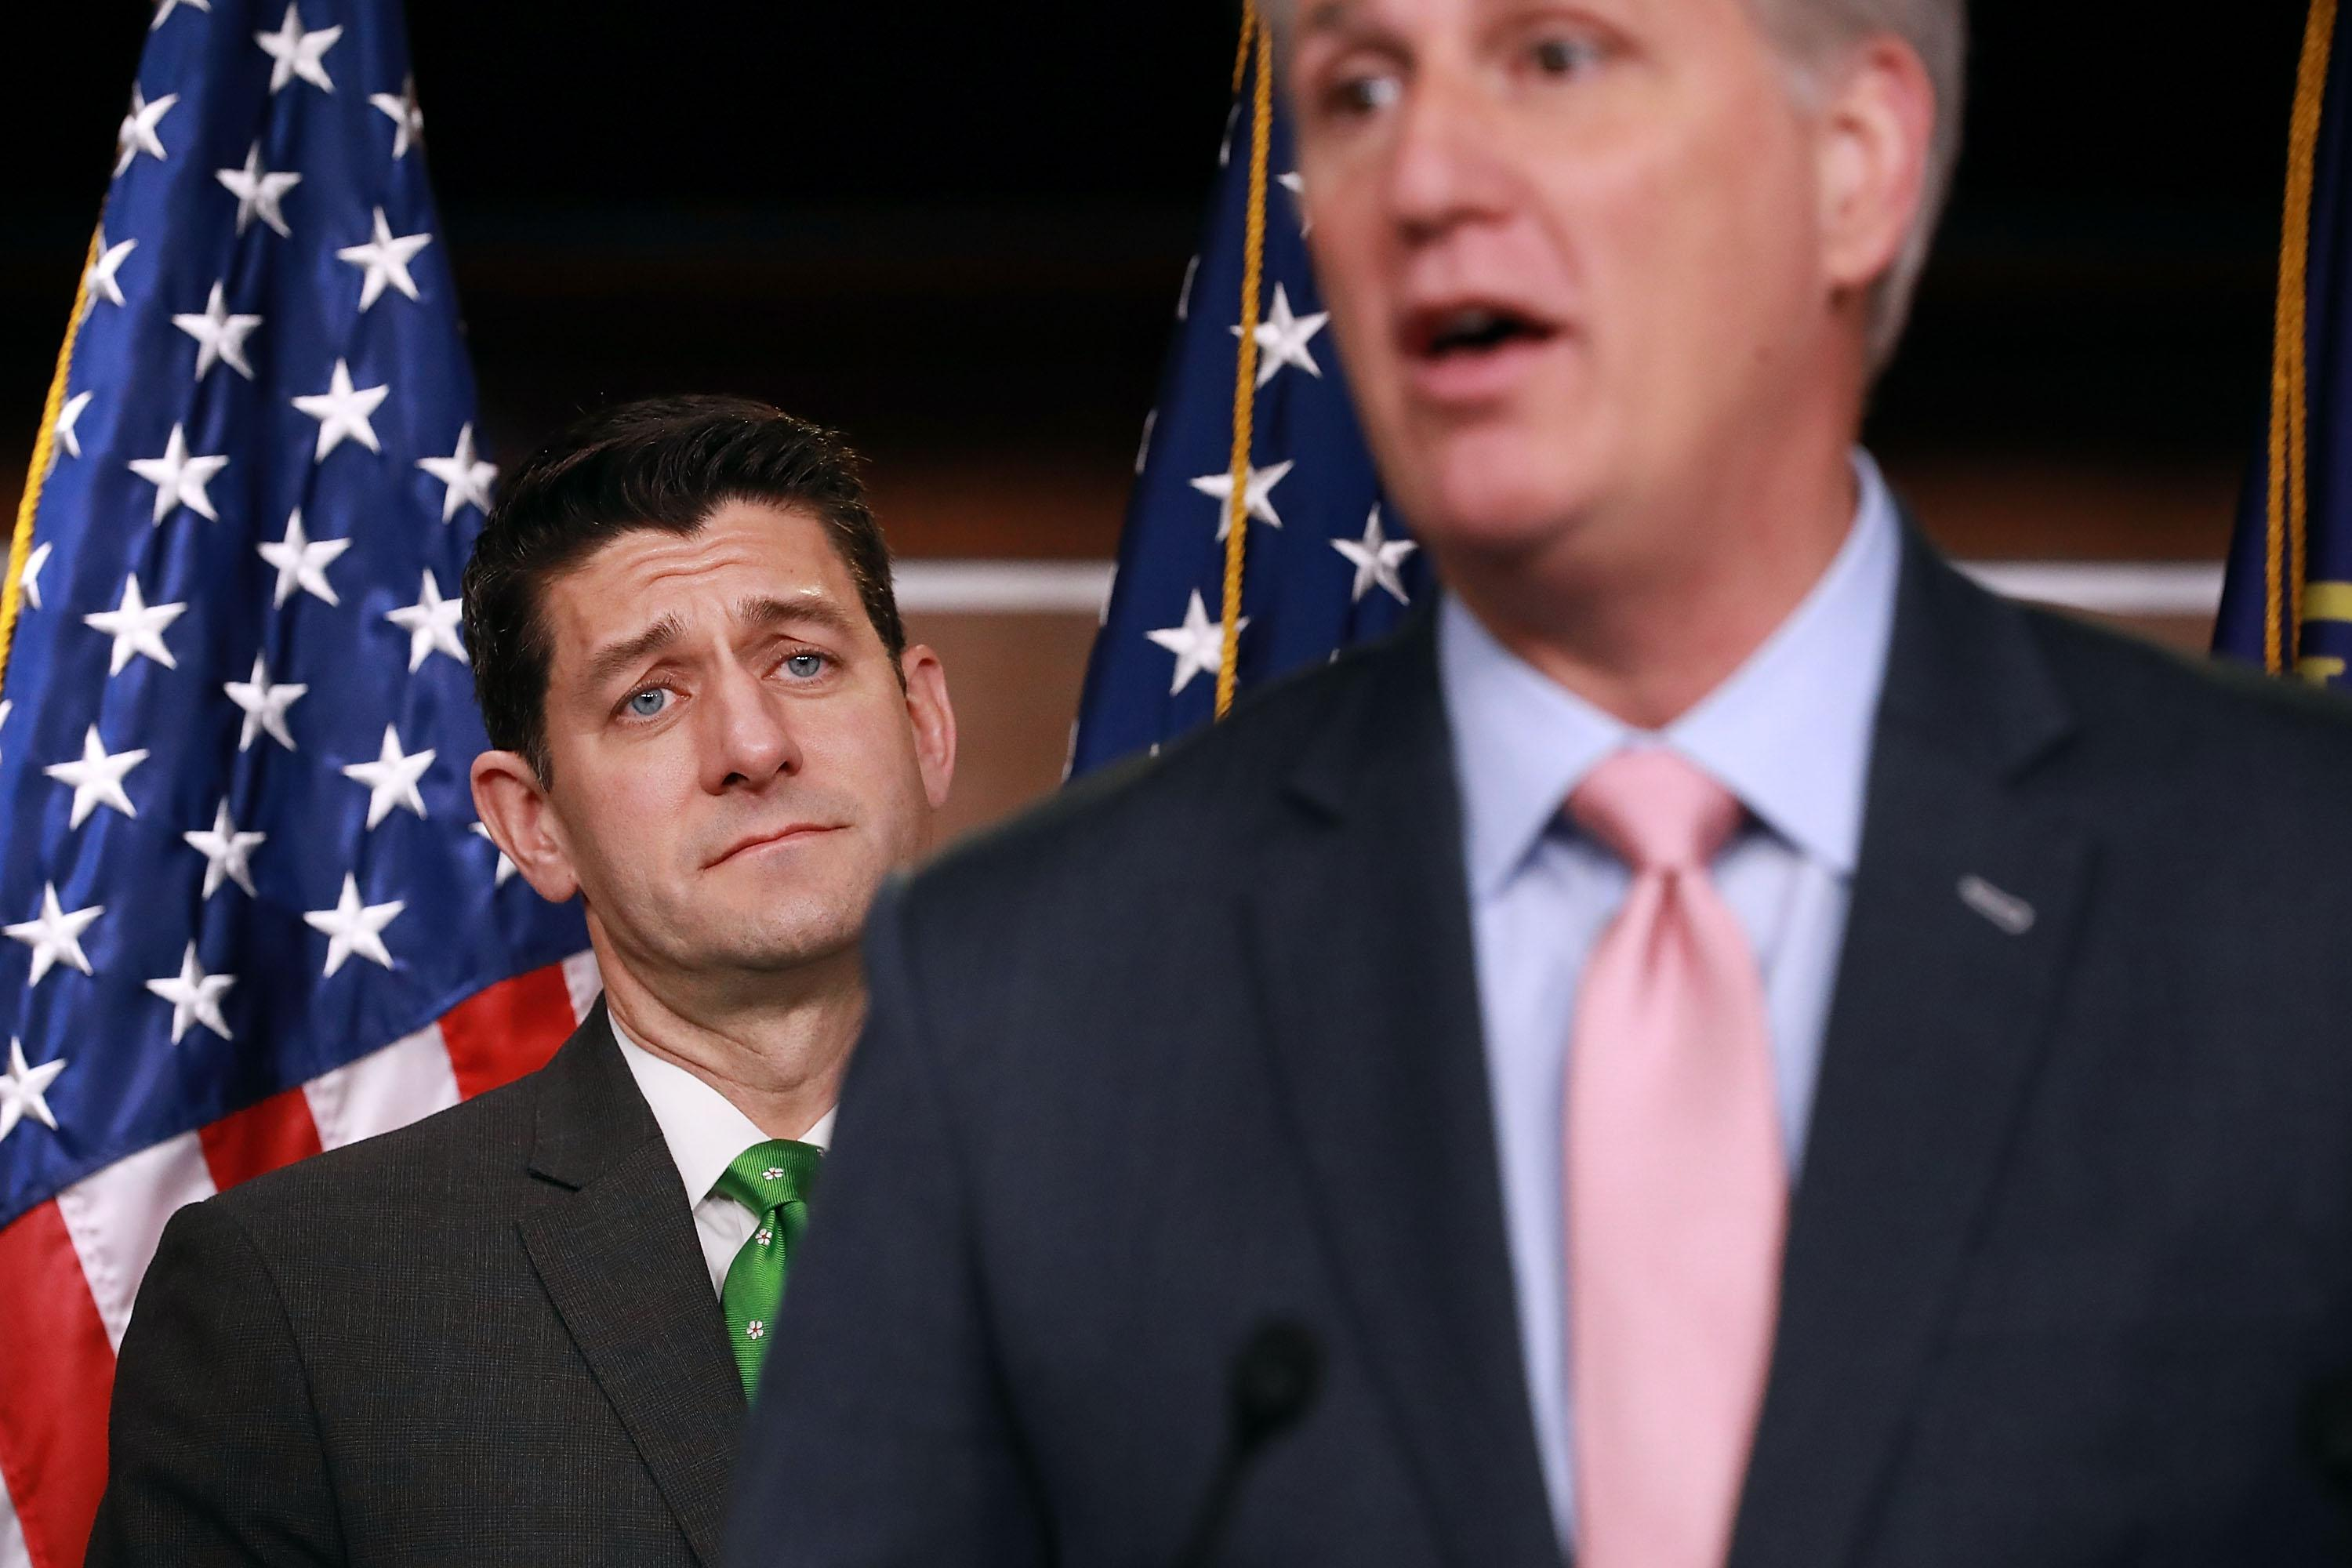 Speaker of the House Paul Ryan, left, and House Majority Leader Kevin McCarthy